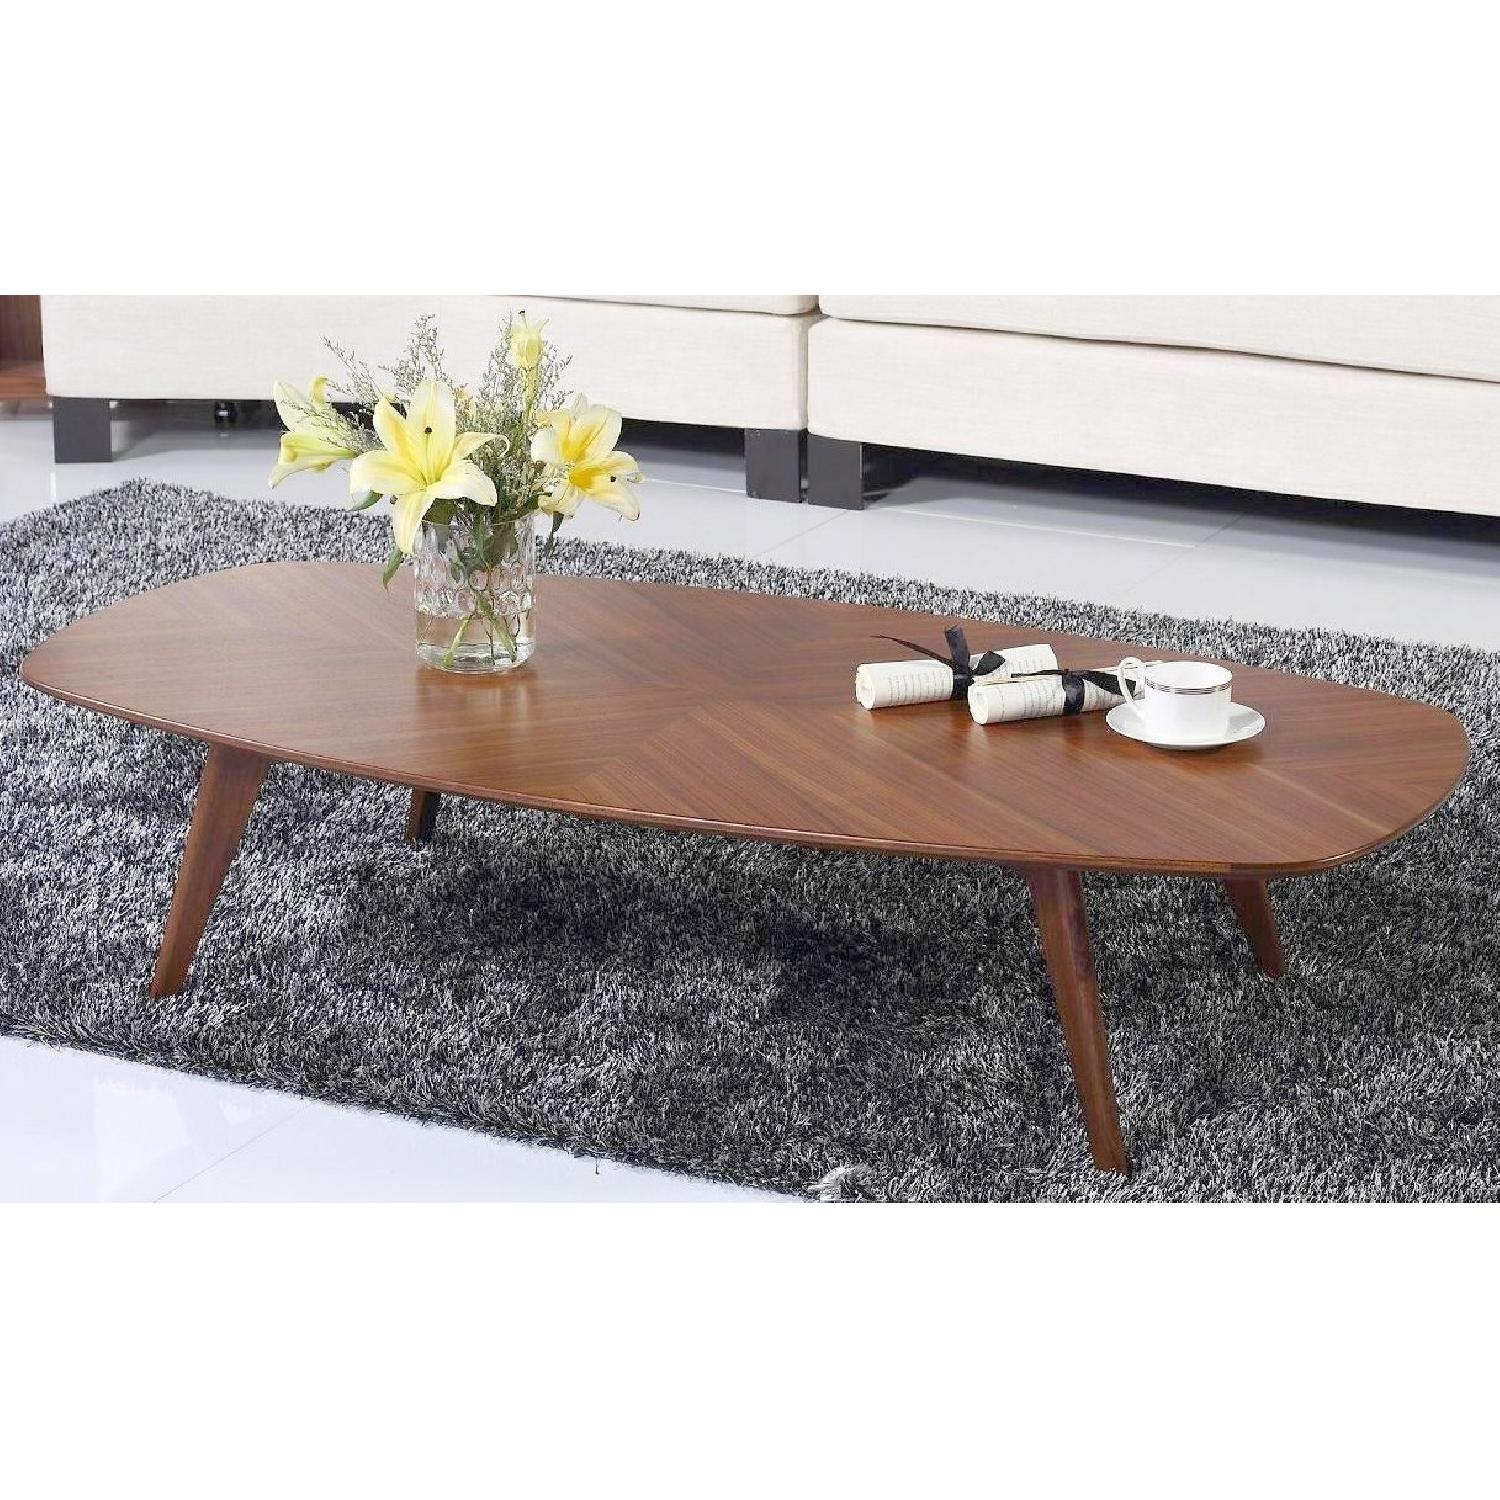 Mid-Century Style Cocktail Table in Walnut Finish w/ Crisscr-1